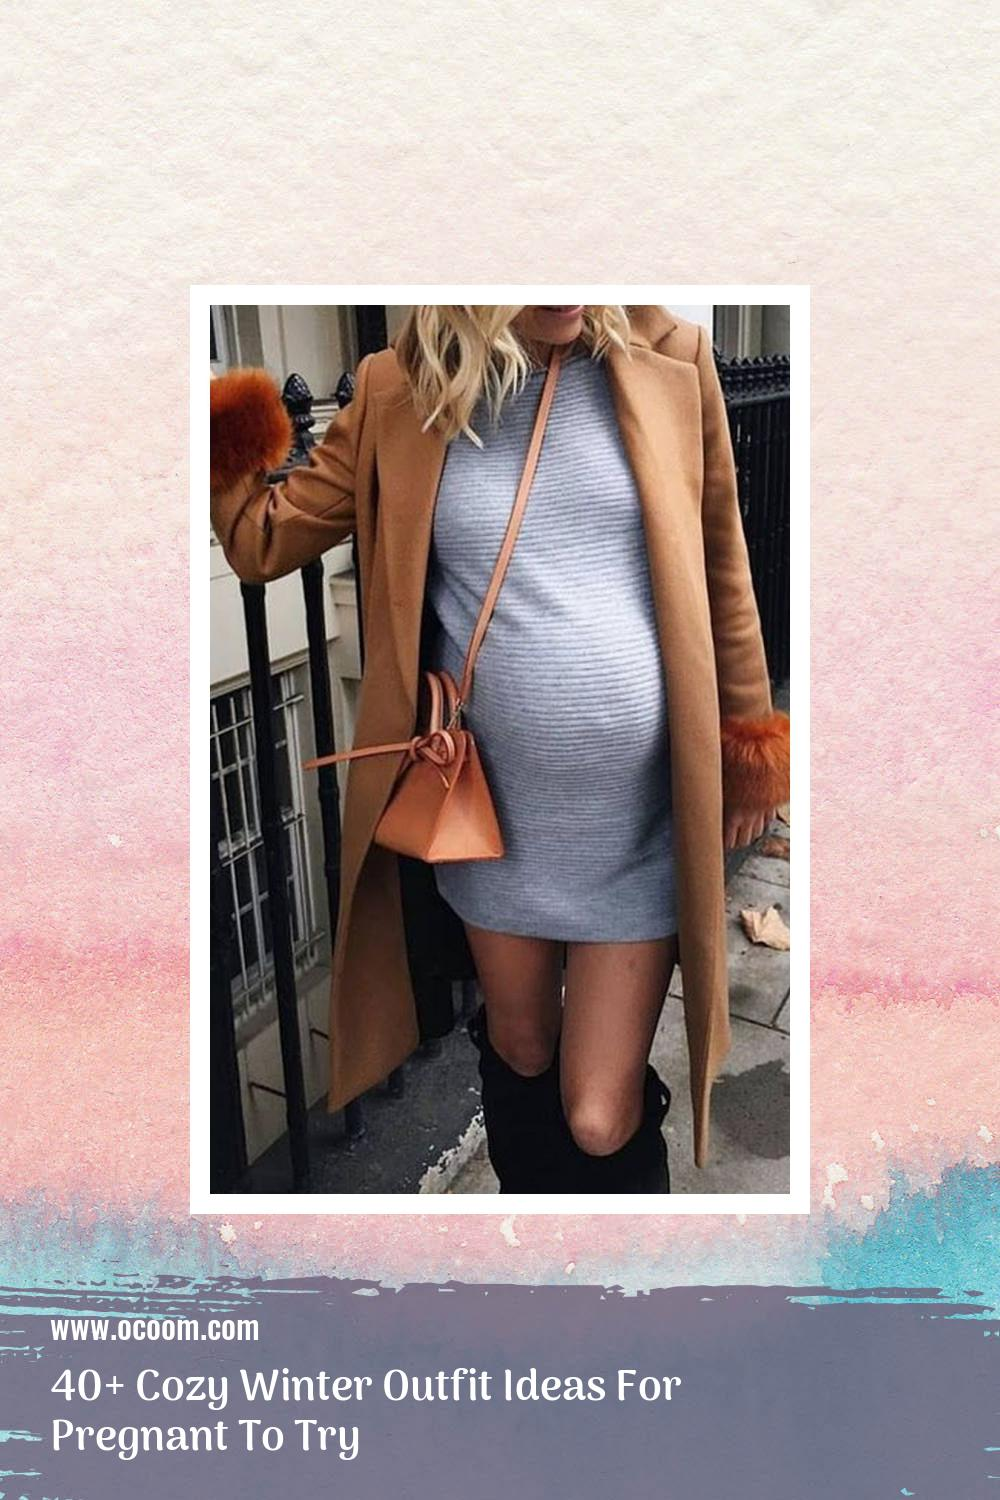 40+ Cozy Winter Outfit Ideas For Pregnant To Try 34